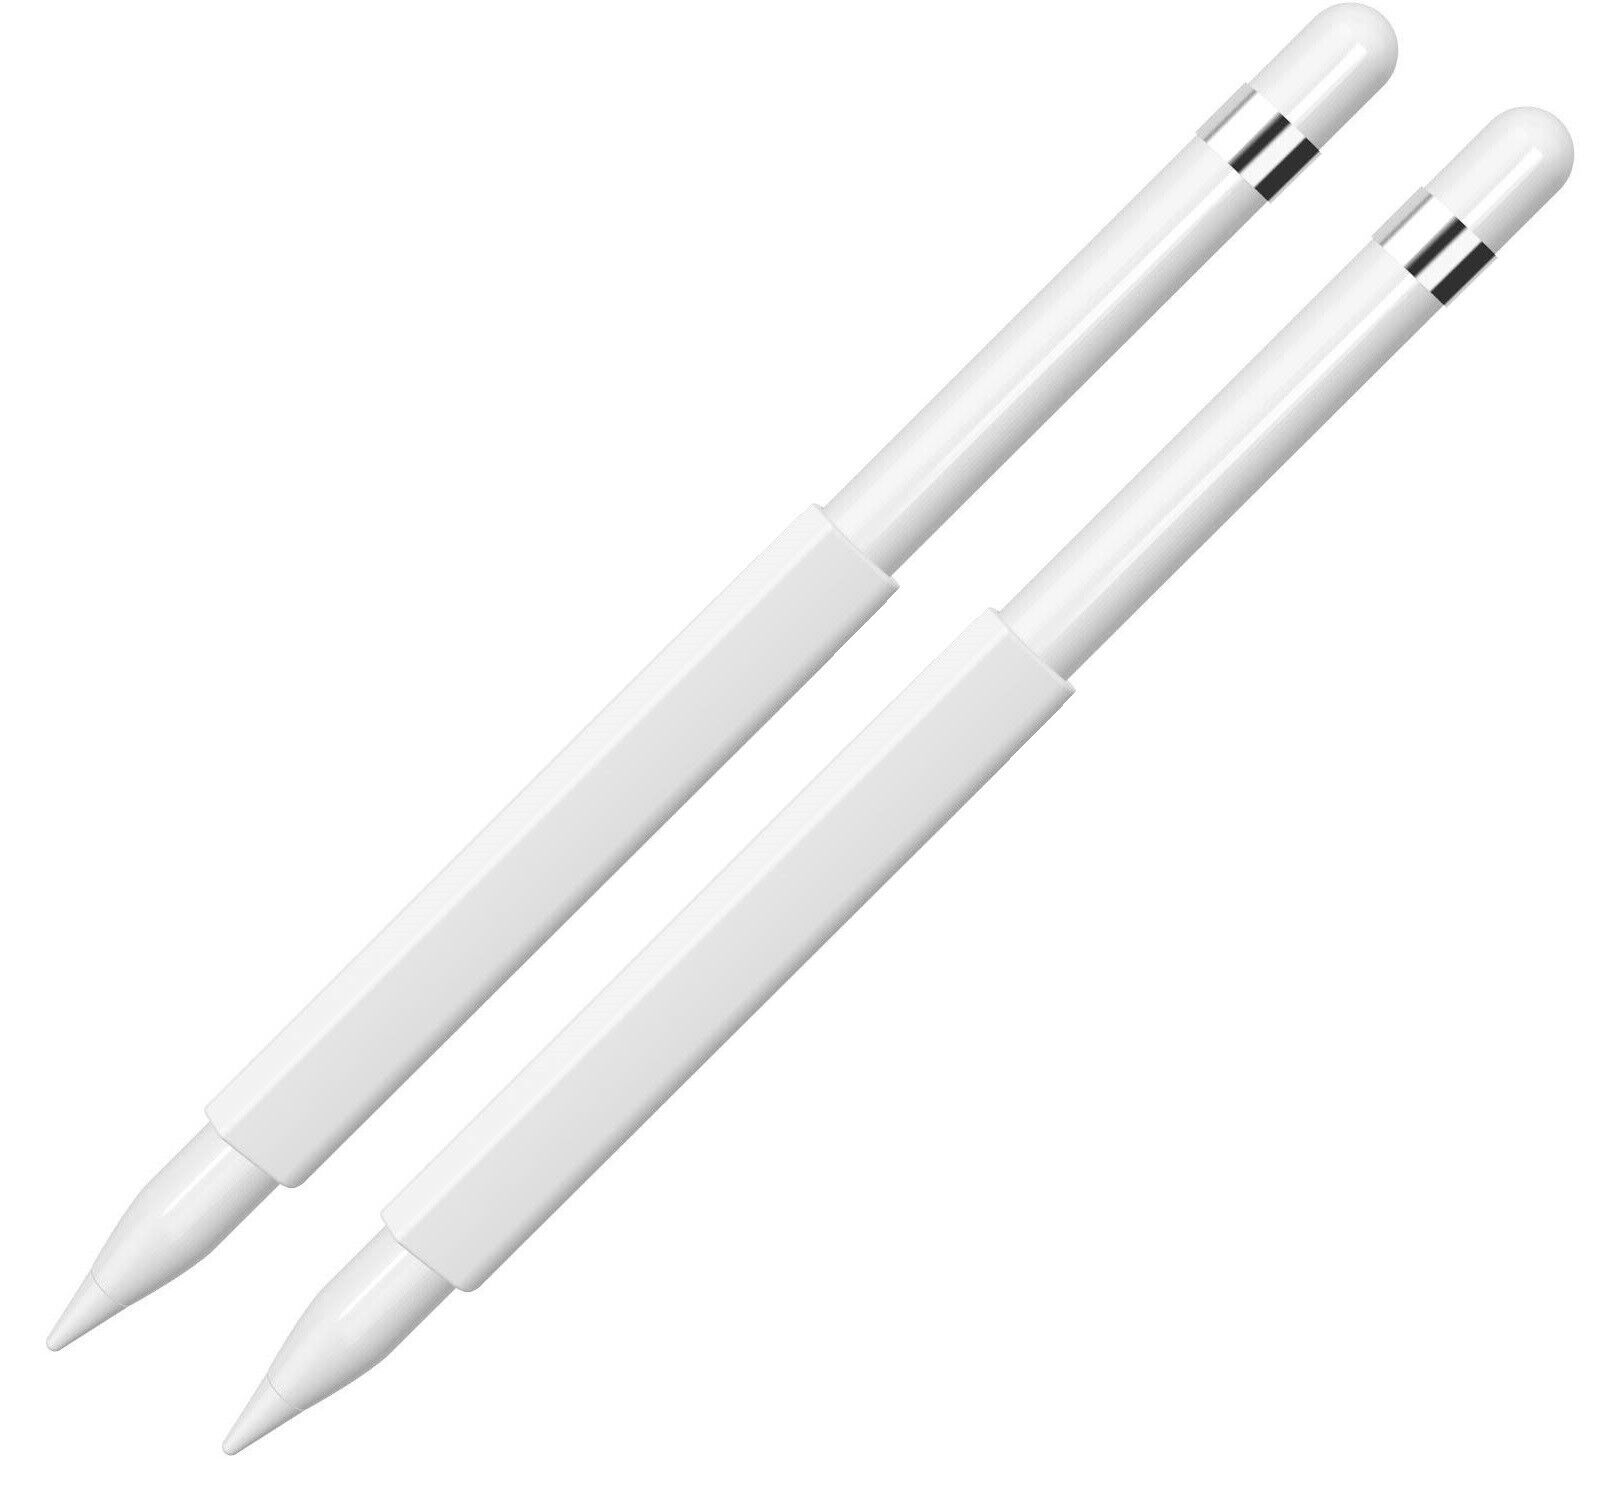 2- White Magnetic Sleeve/Grip Holder for The Apple Pencil Computers/Tablets & Networking